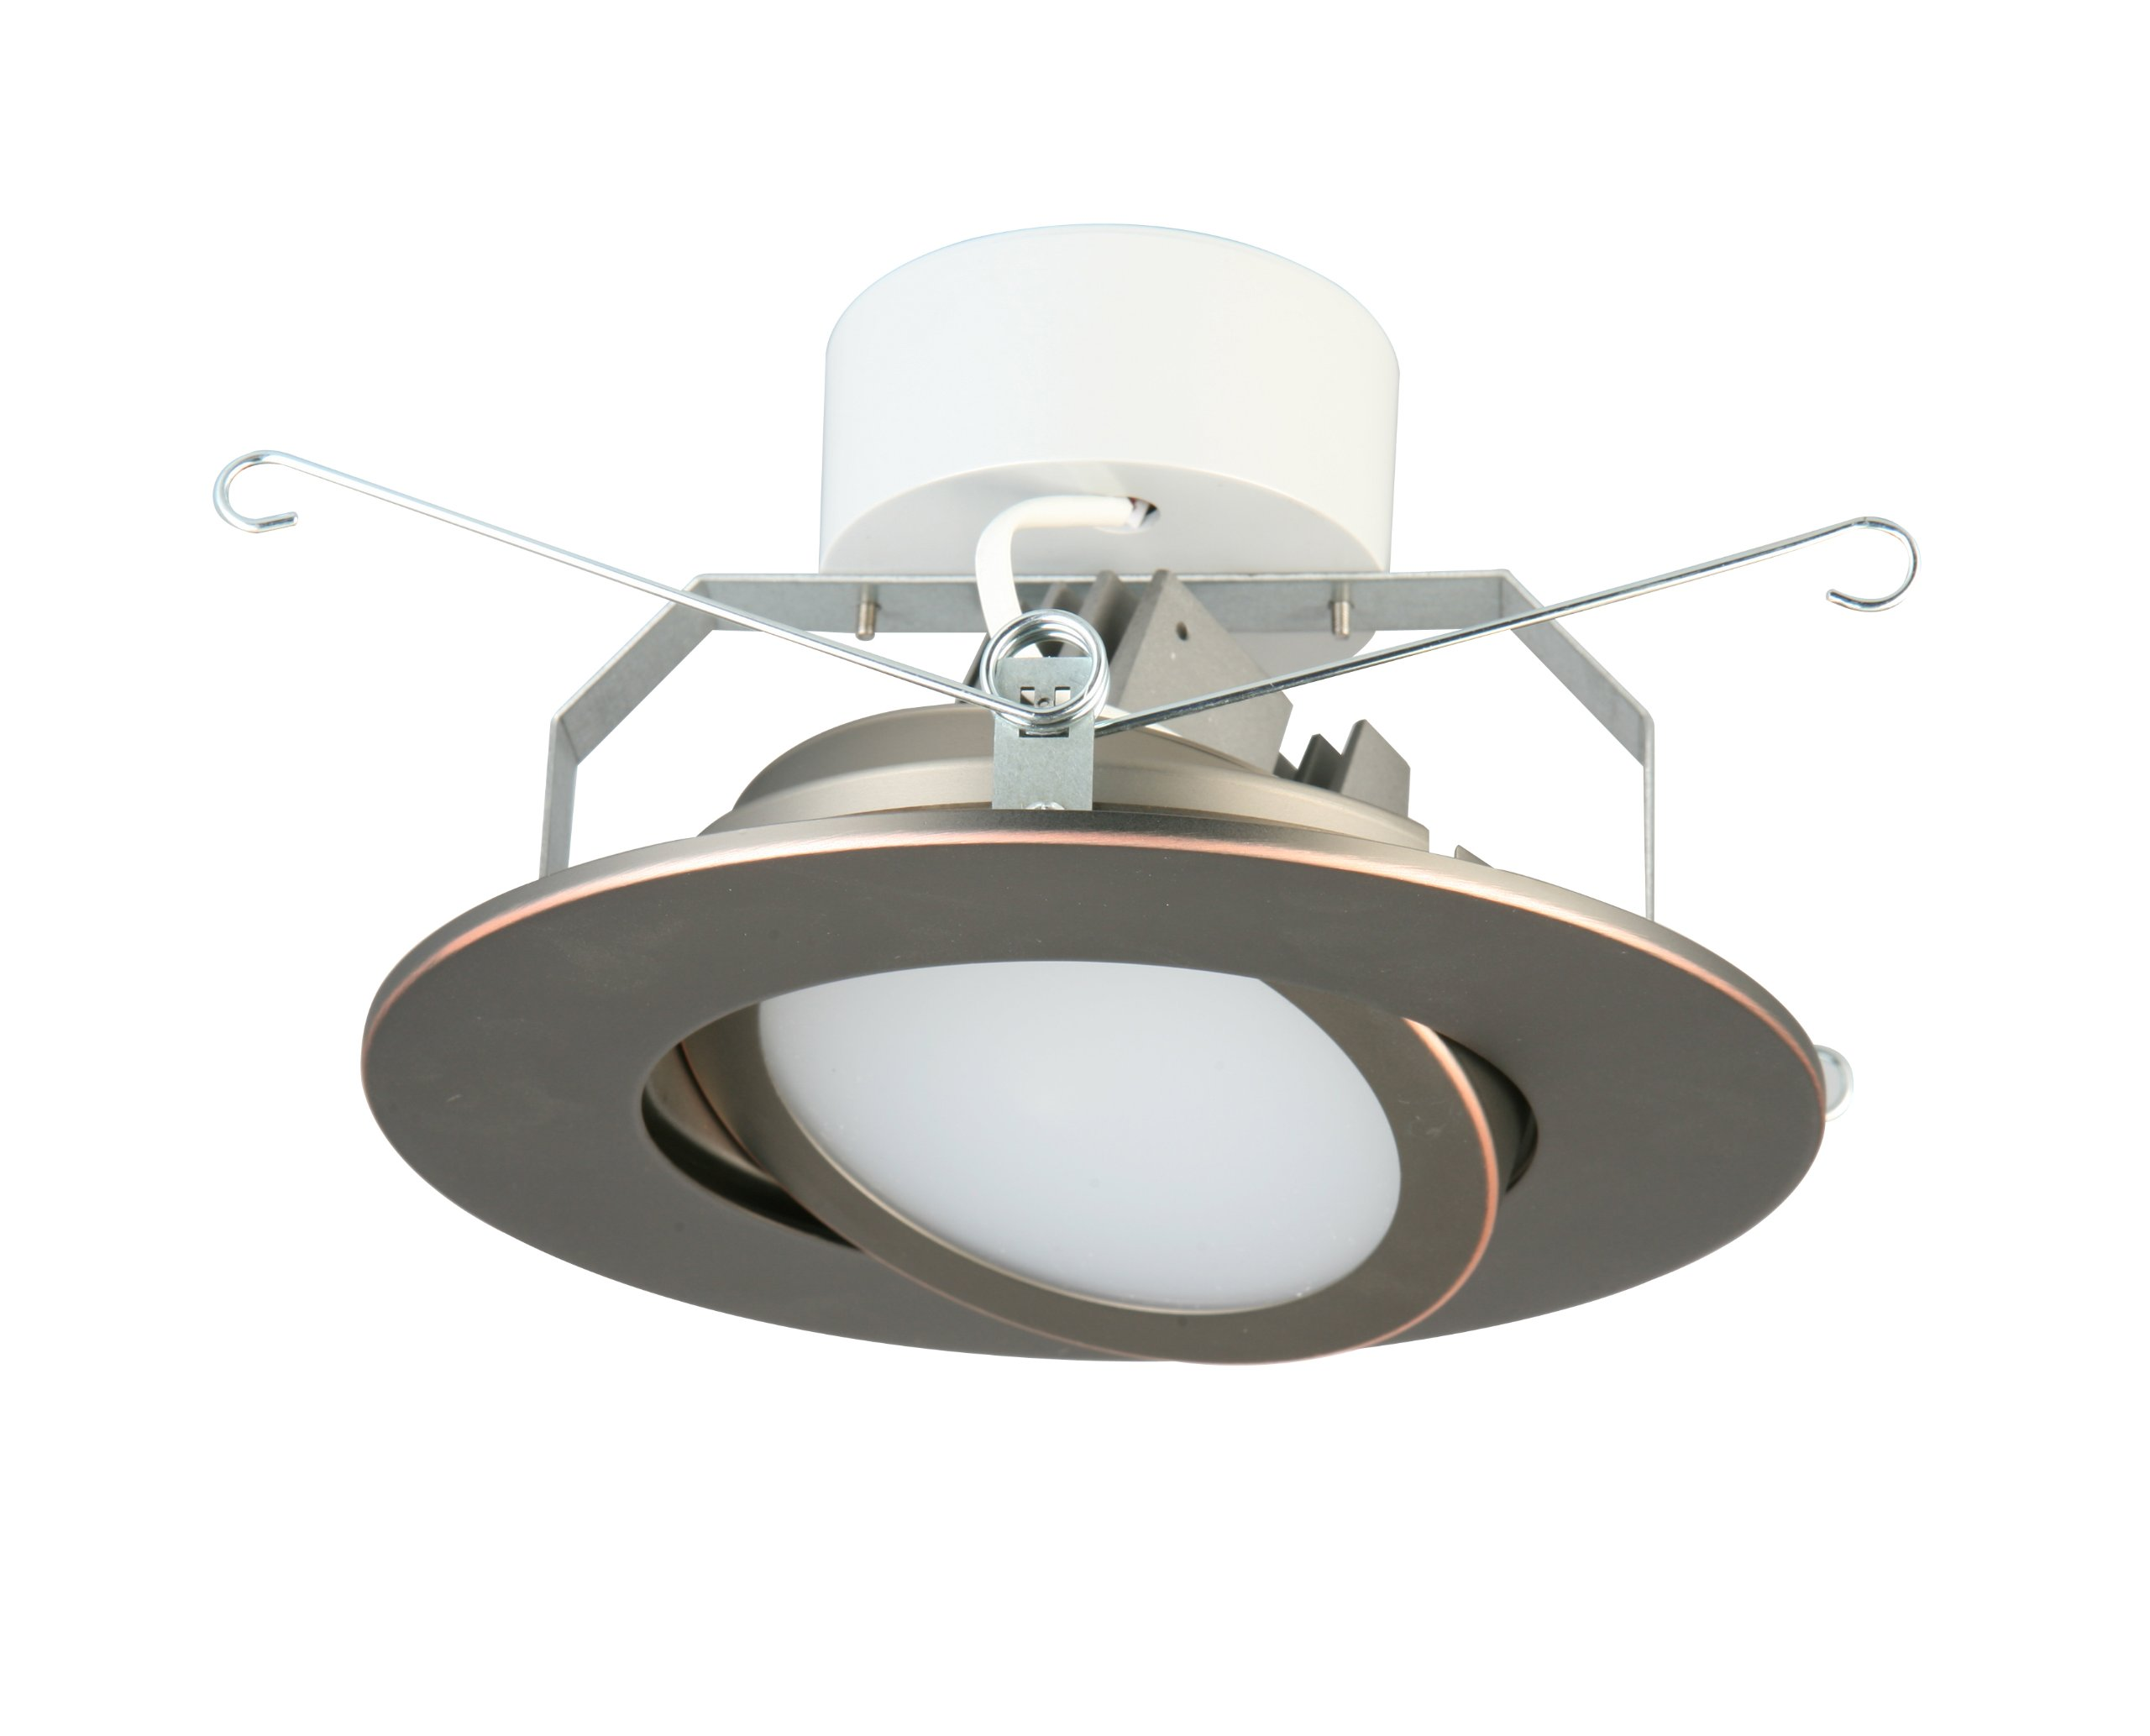 Lithonia Lighting Lithonia 6G1ORB LED M6 6-Inch Oil-Rubbed Bronze LED Gimbal Module by Lithonia Lighting